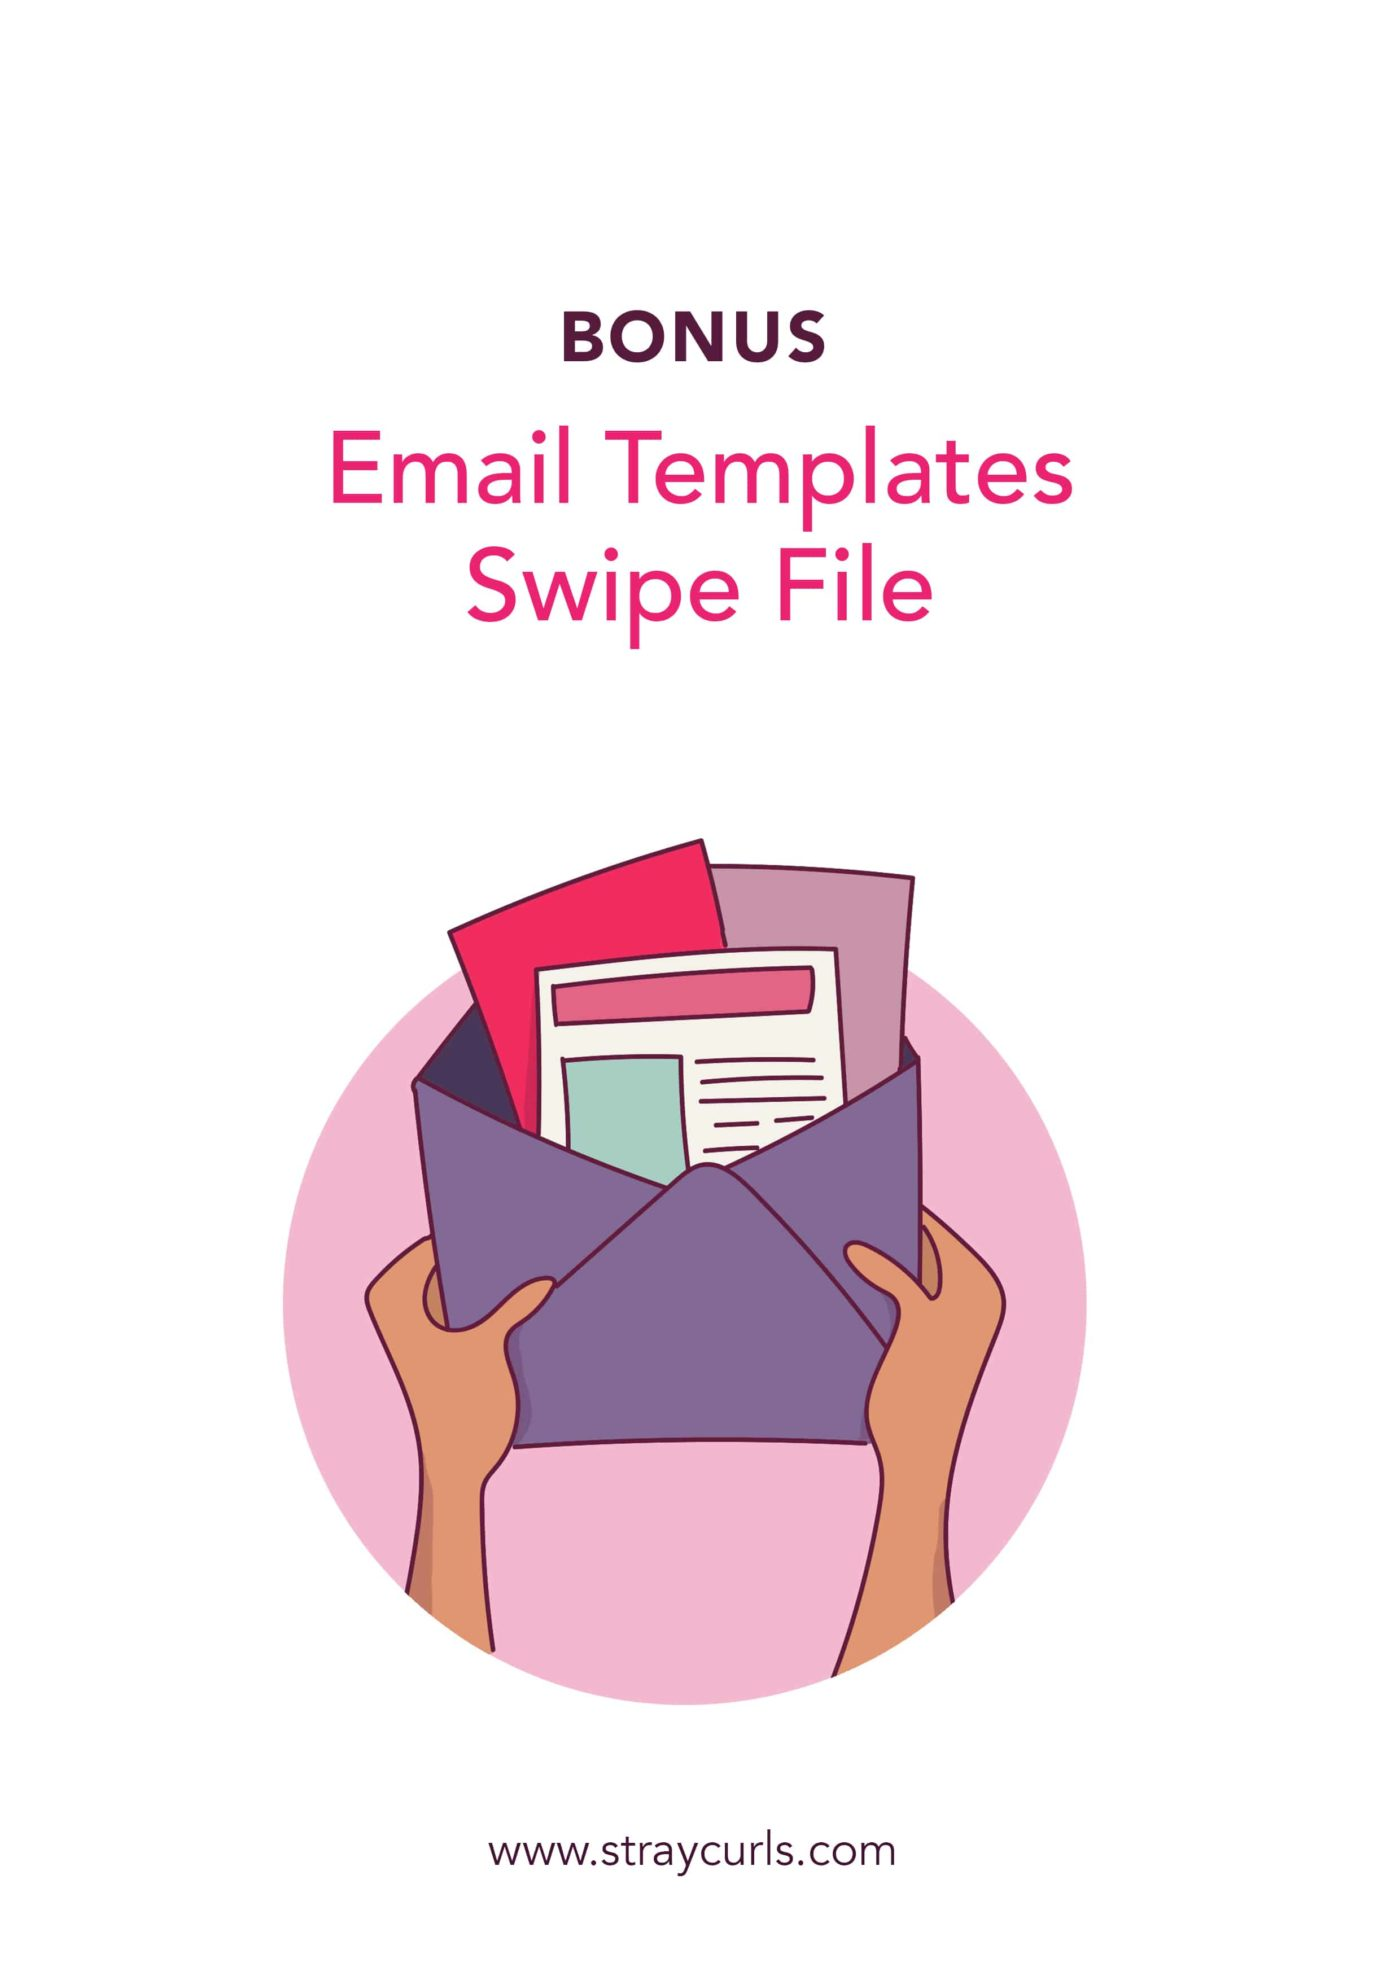 Email Templates Swipe File that helps you write emails to reach out to other Influencers so that you can get high quality blog traffic.